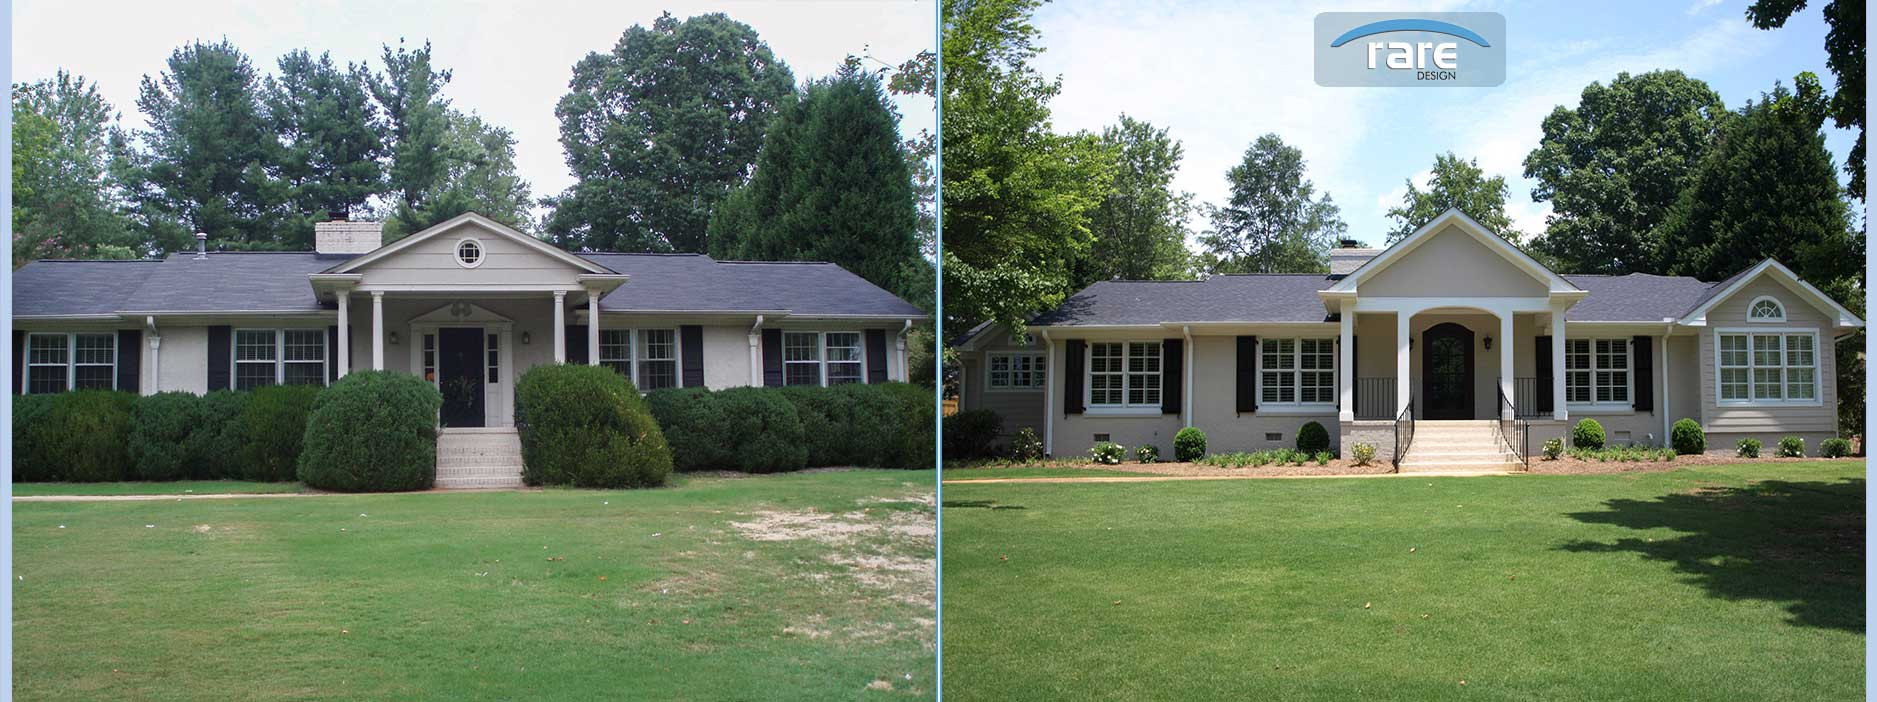 Exterior Remodel Before And After Home Remodel Before And After Exterior Images Ranch Style